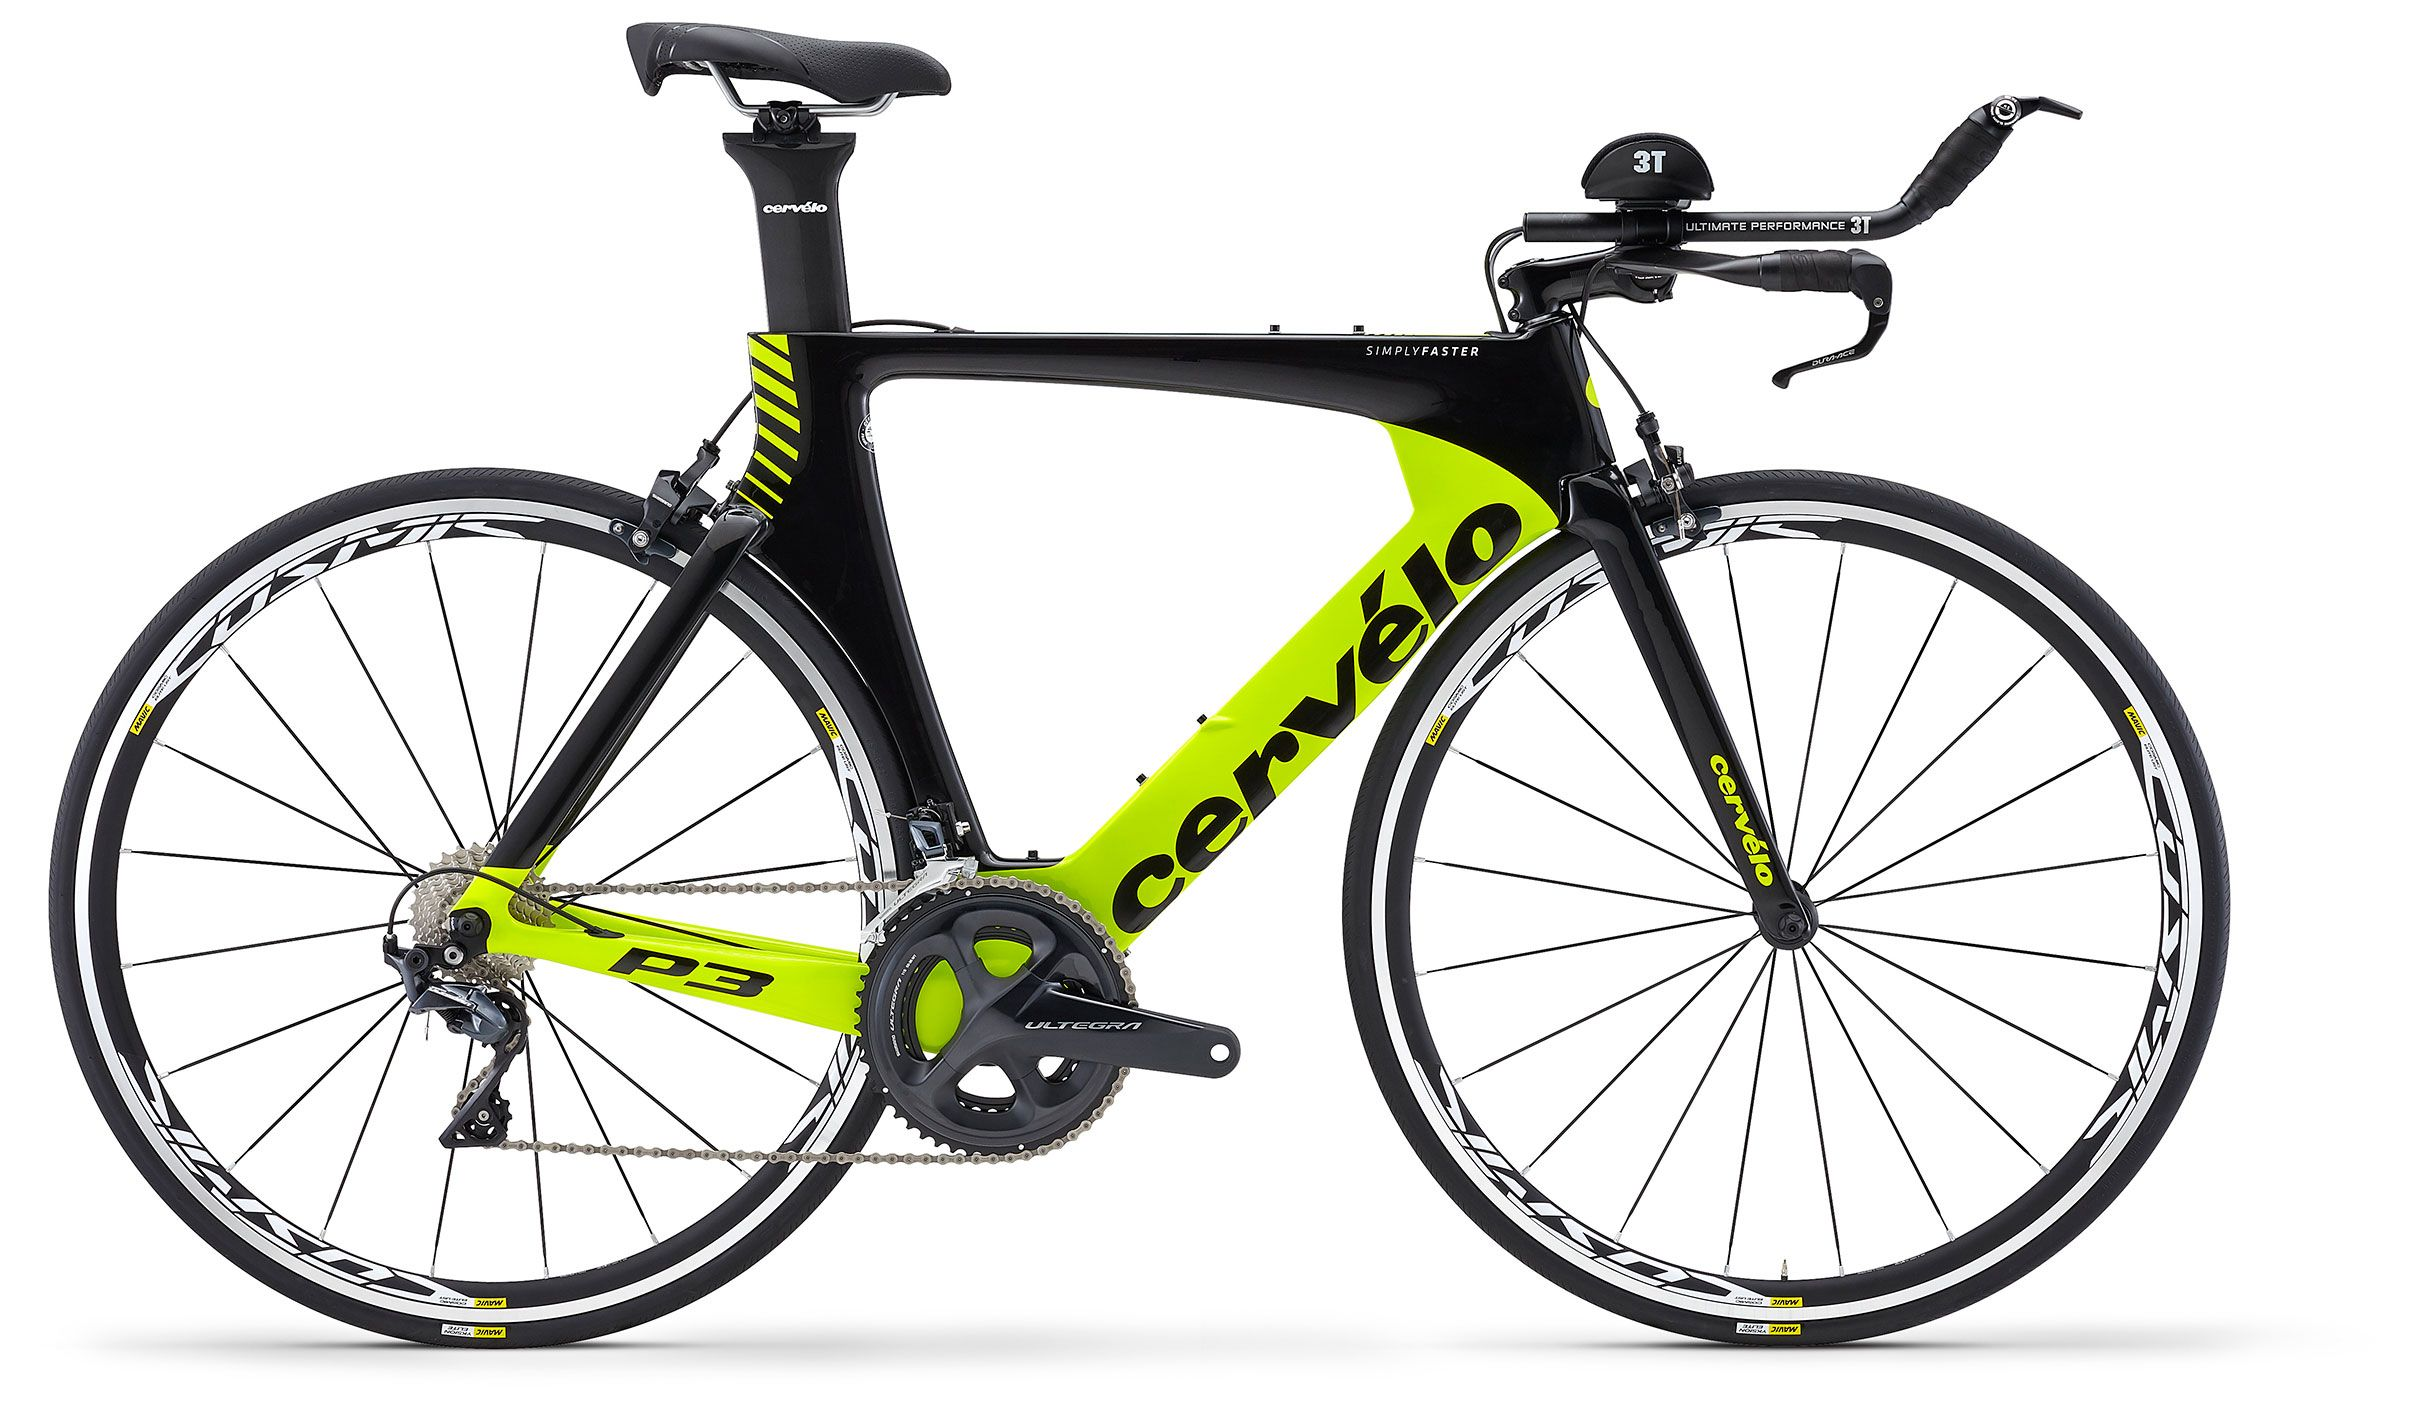 Велосипед Cervelo P3 Ultegra 2018 велосипед cannondale supersix evo ultegra 3 2016